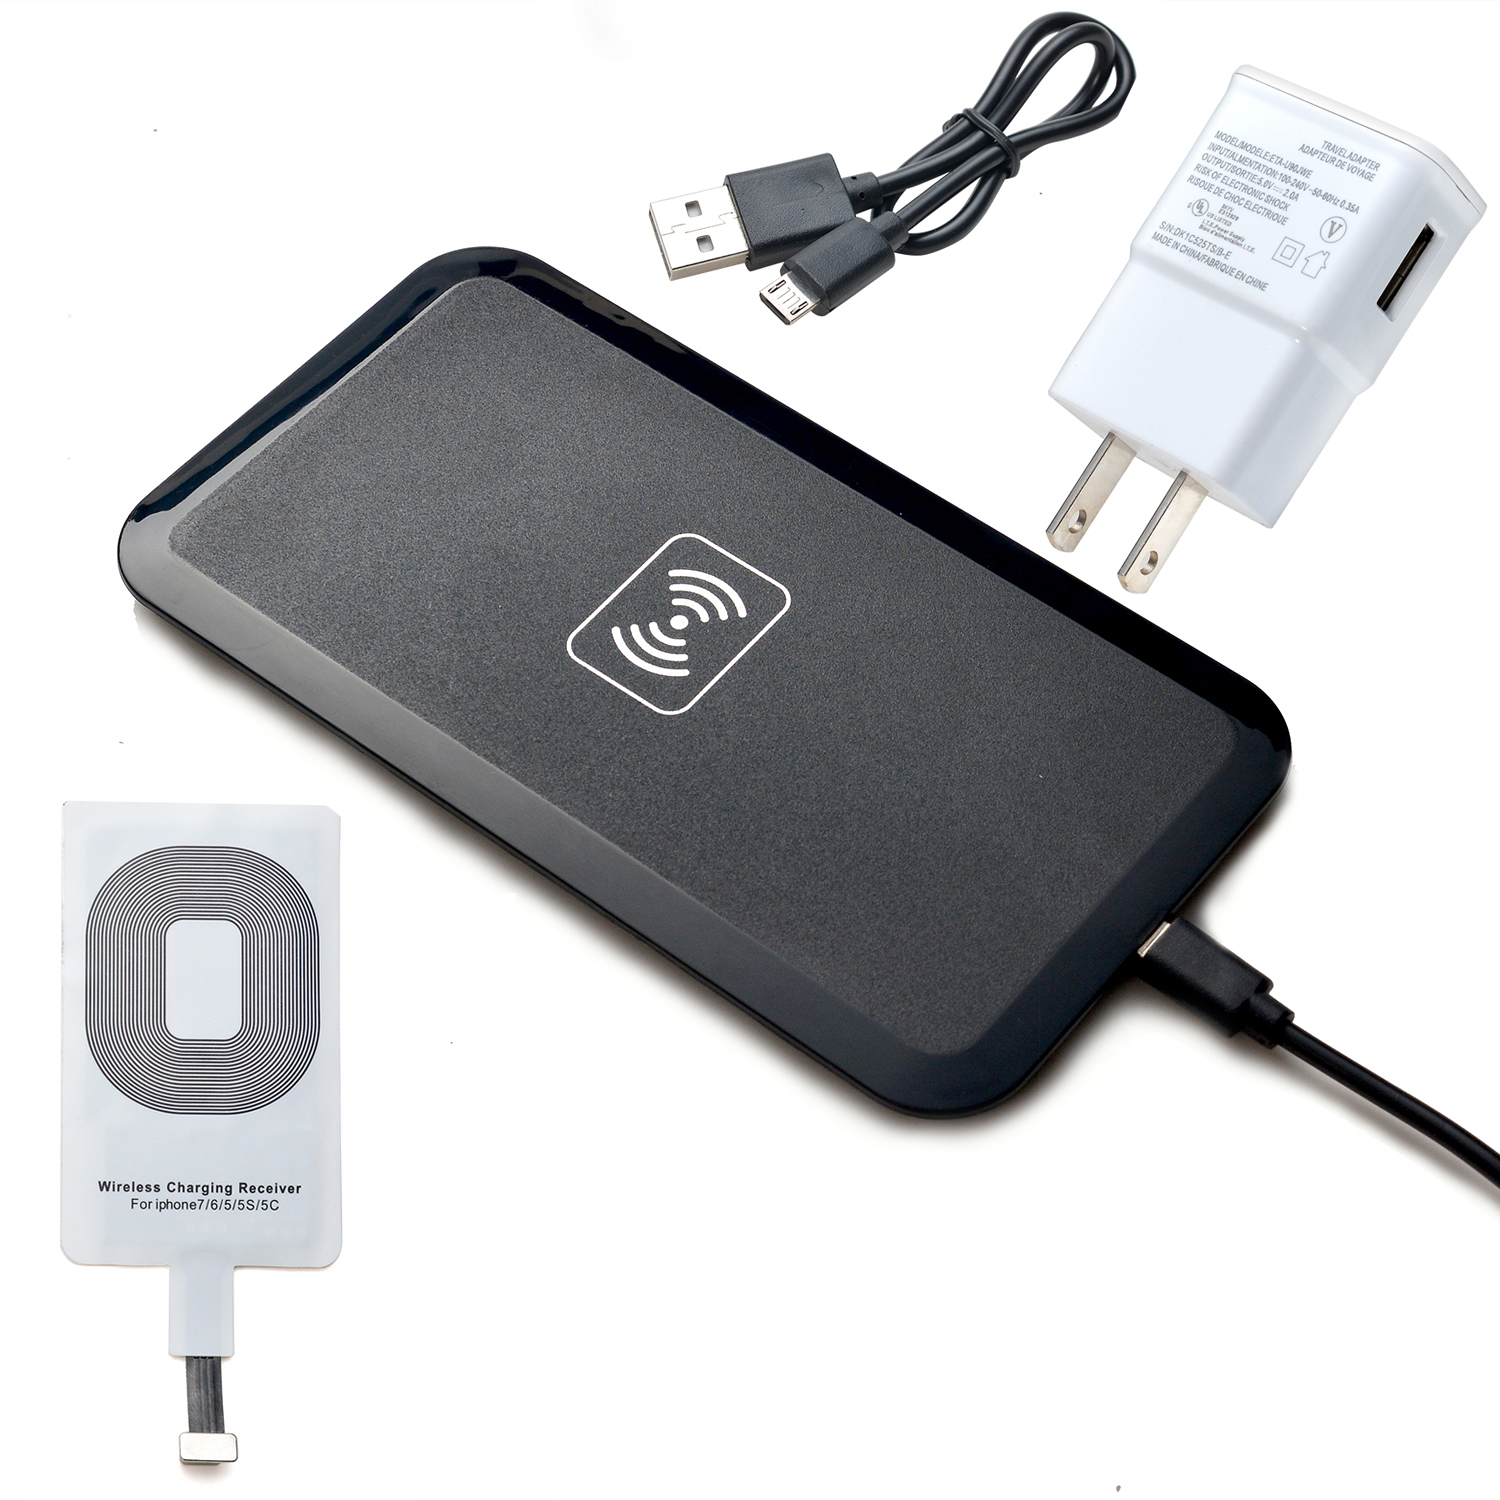 wireless battery charger Just start wireless battery charger app, press start charge button and your phone will use nearby electromagnetic fields to fully recharge battery.